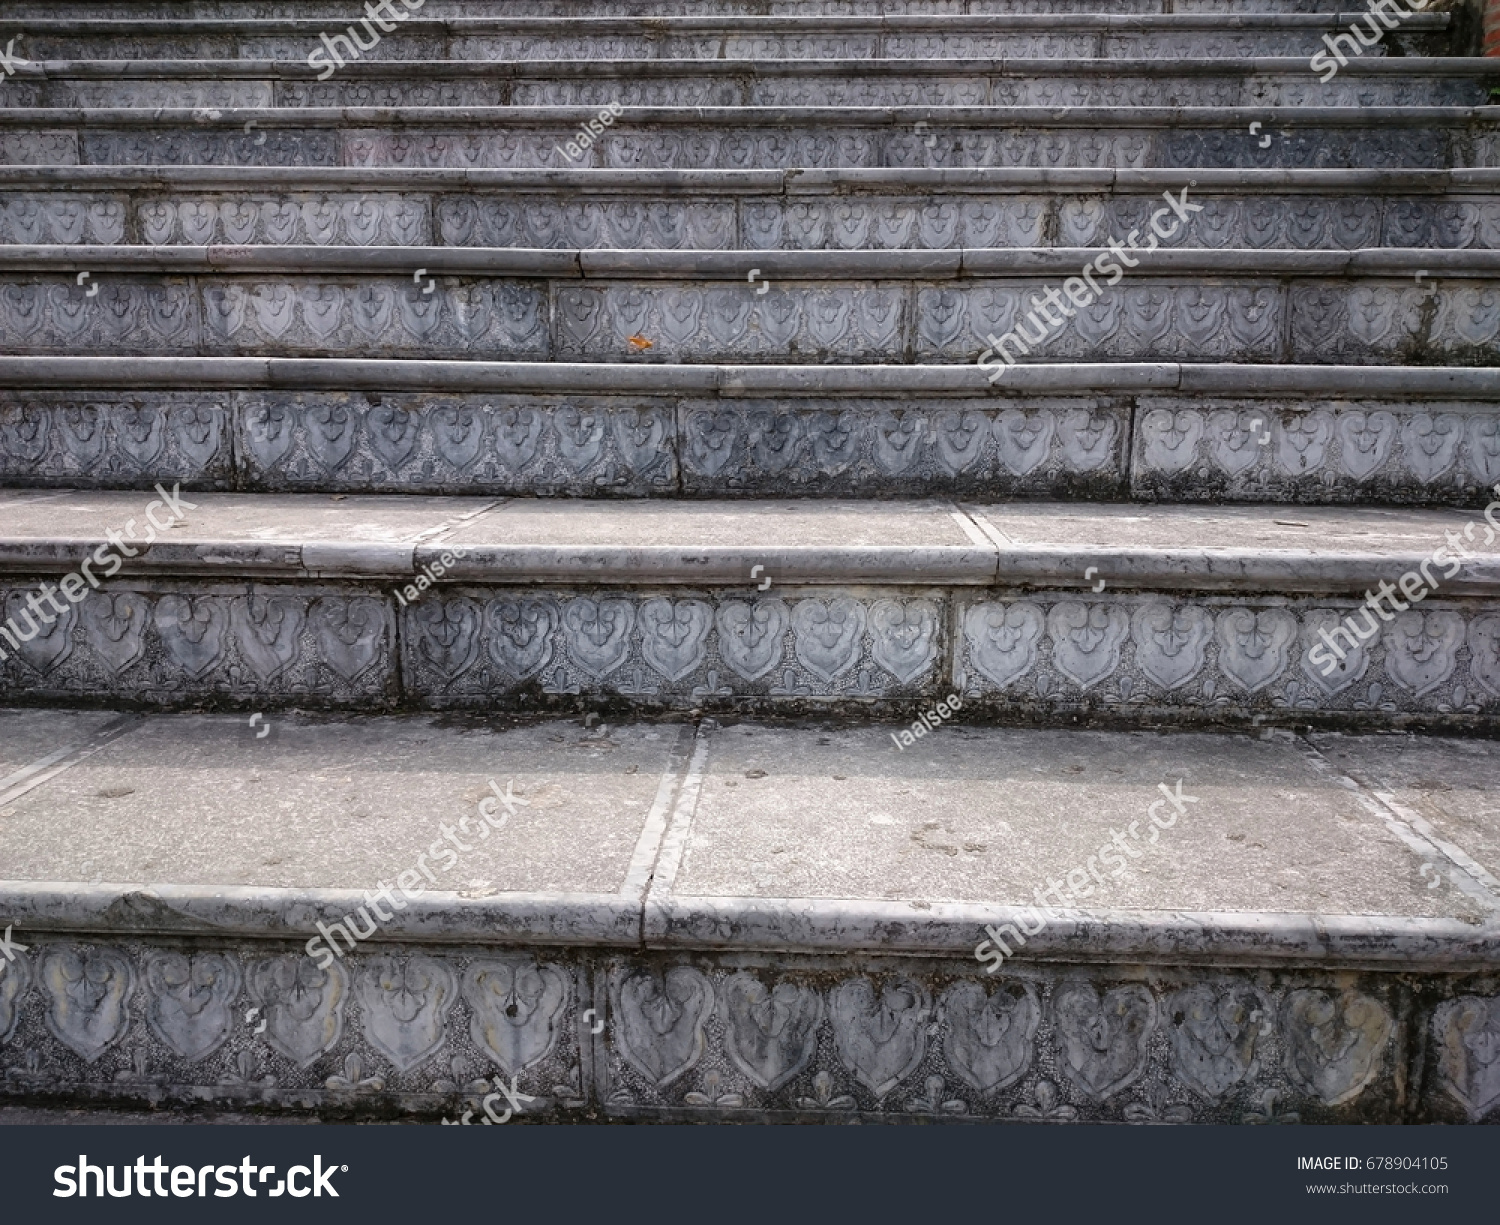 Stone Stair With Carved Grey Steps. Ascending Steps Outdoors In The  Vietnamese Style Pattern.